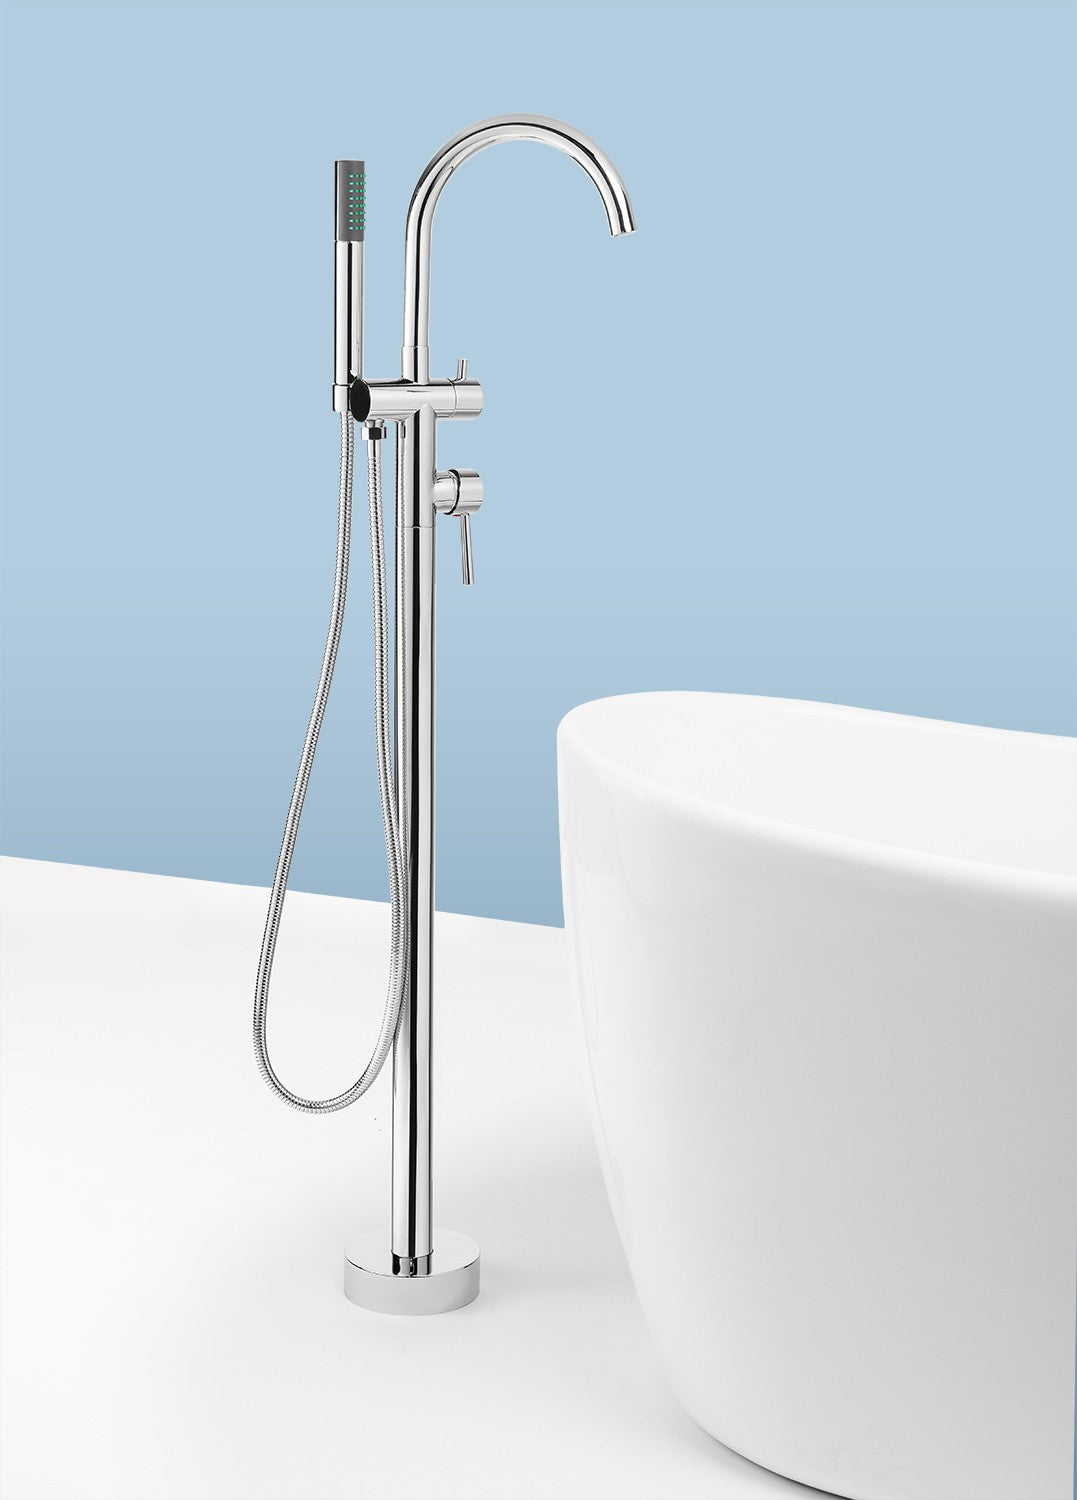 AKDY Freestanding Tub Filler Faucet W/ Handheld Shower AZ 8723